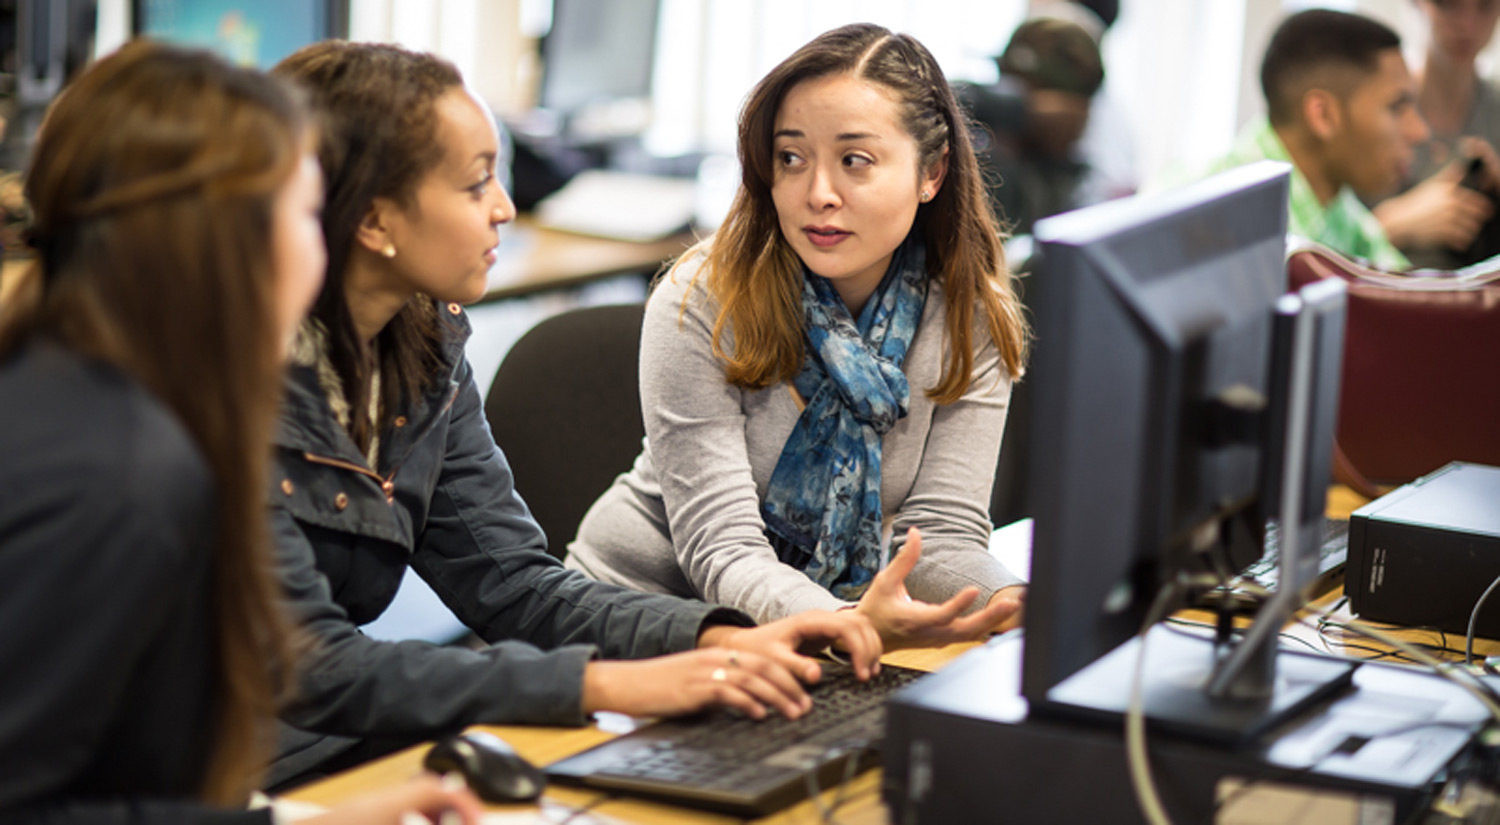 Image of three female students discussing work in a PC lab